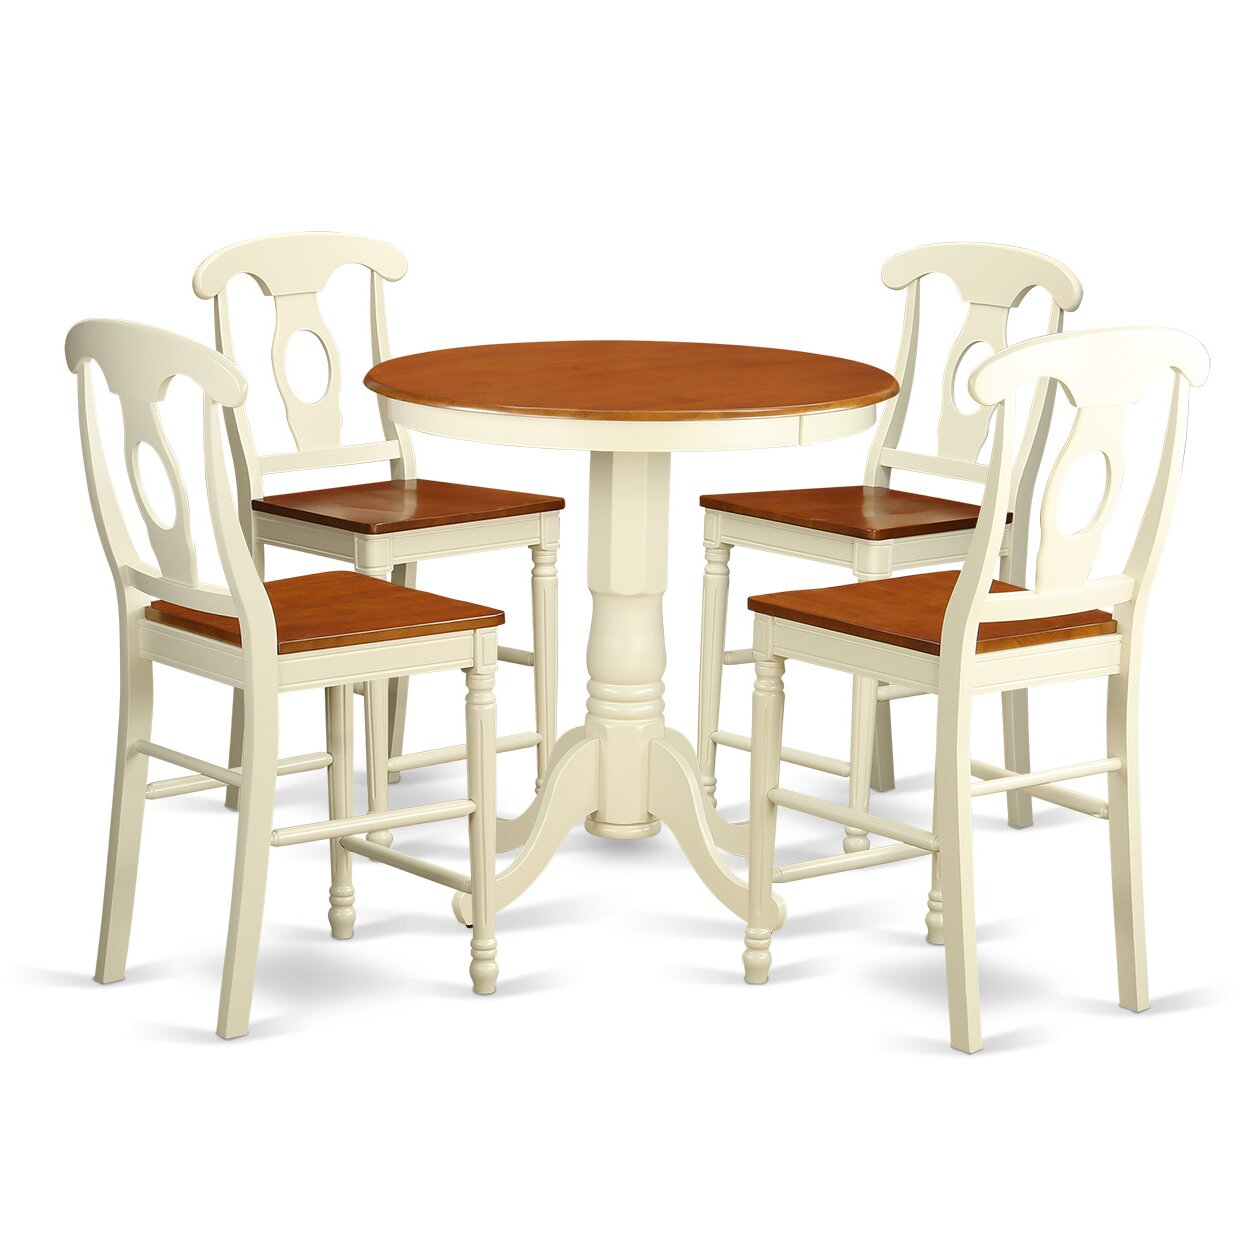 East west eden 5 piece counter height pub table set wayfair for 4 piece dining table set